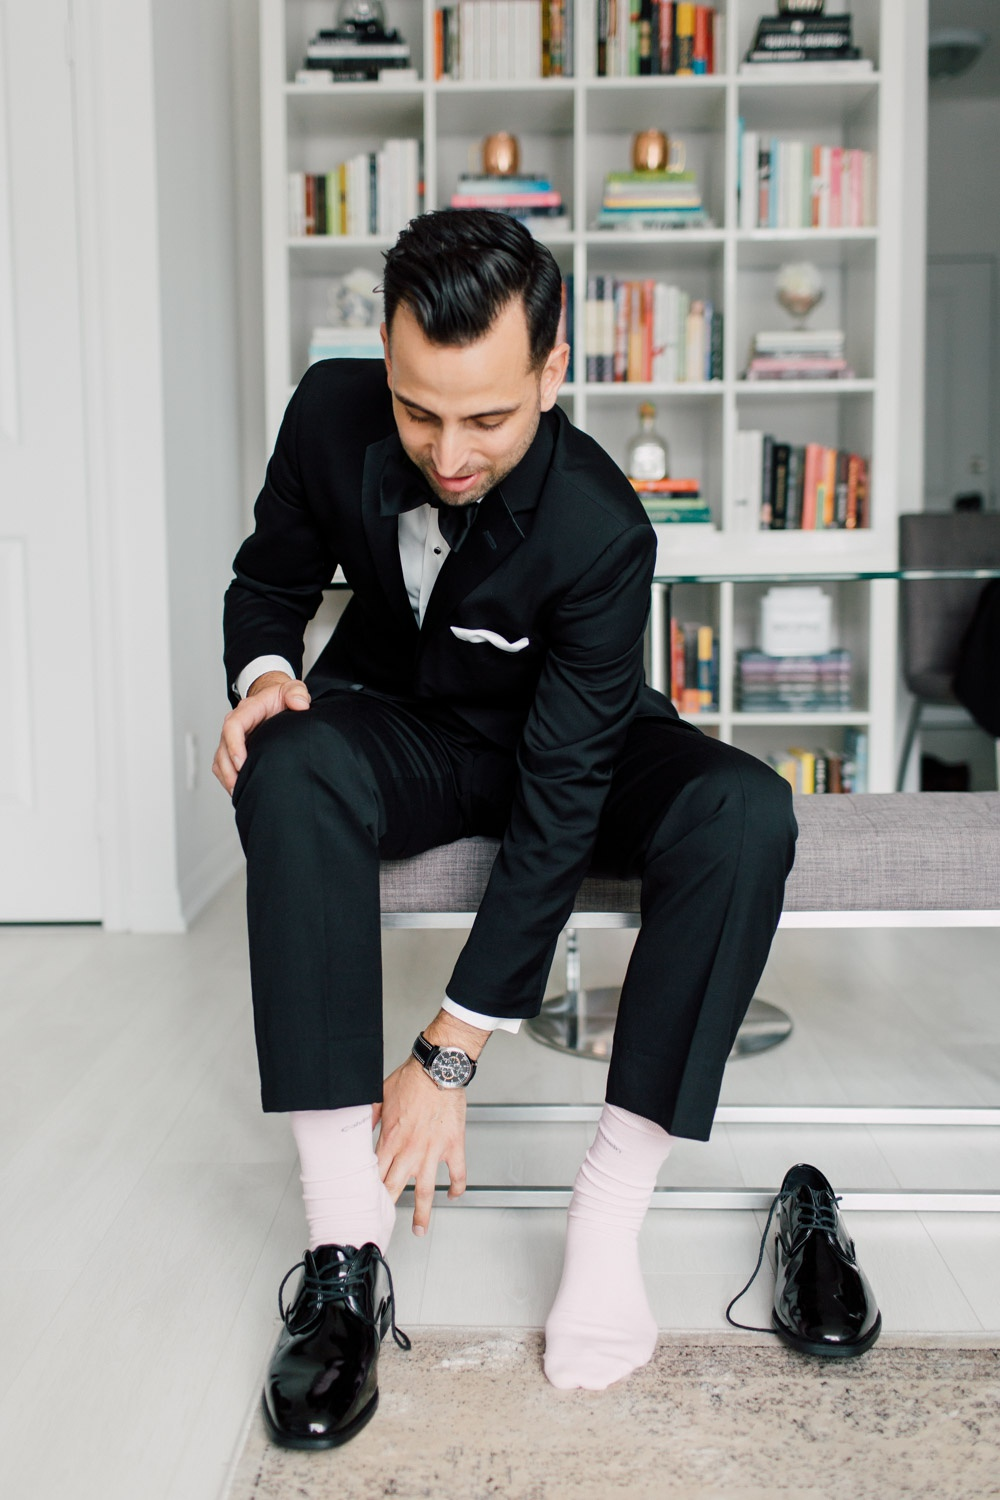 groom putting on the shoes